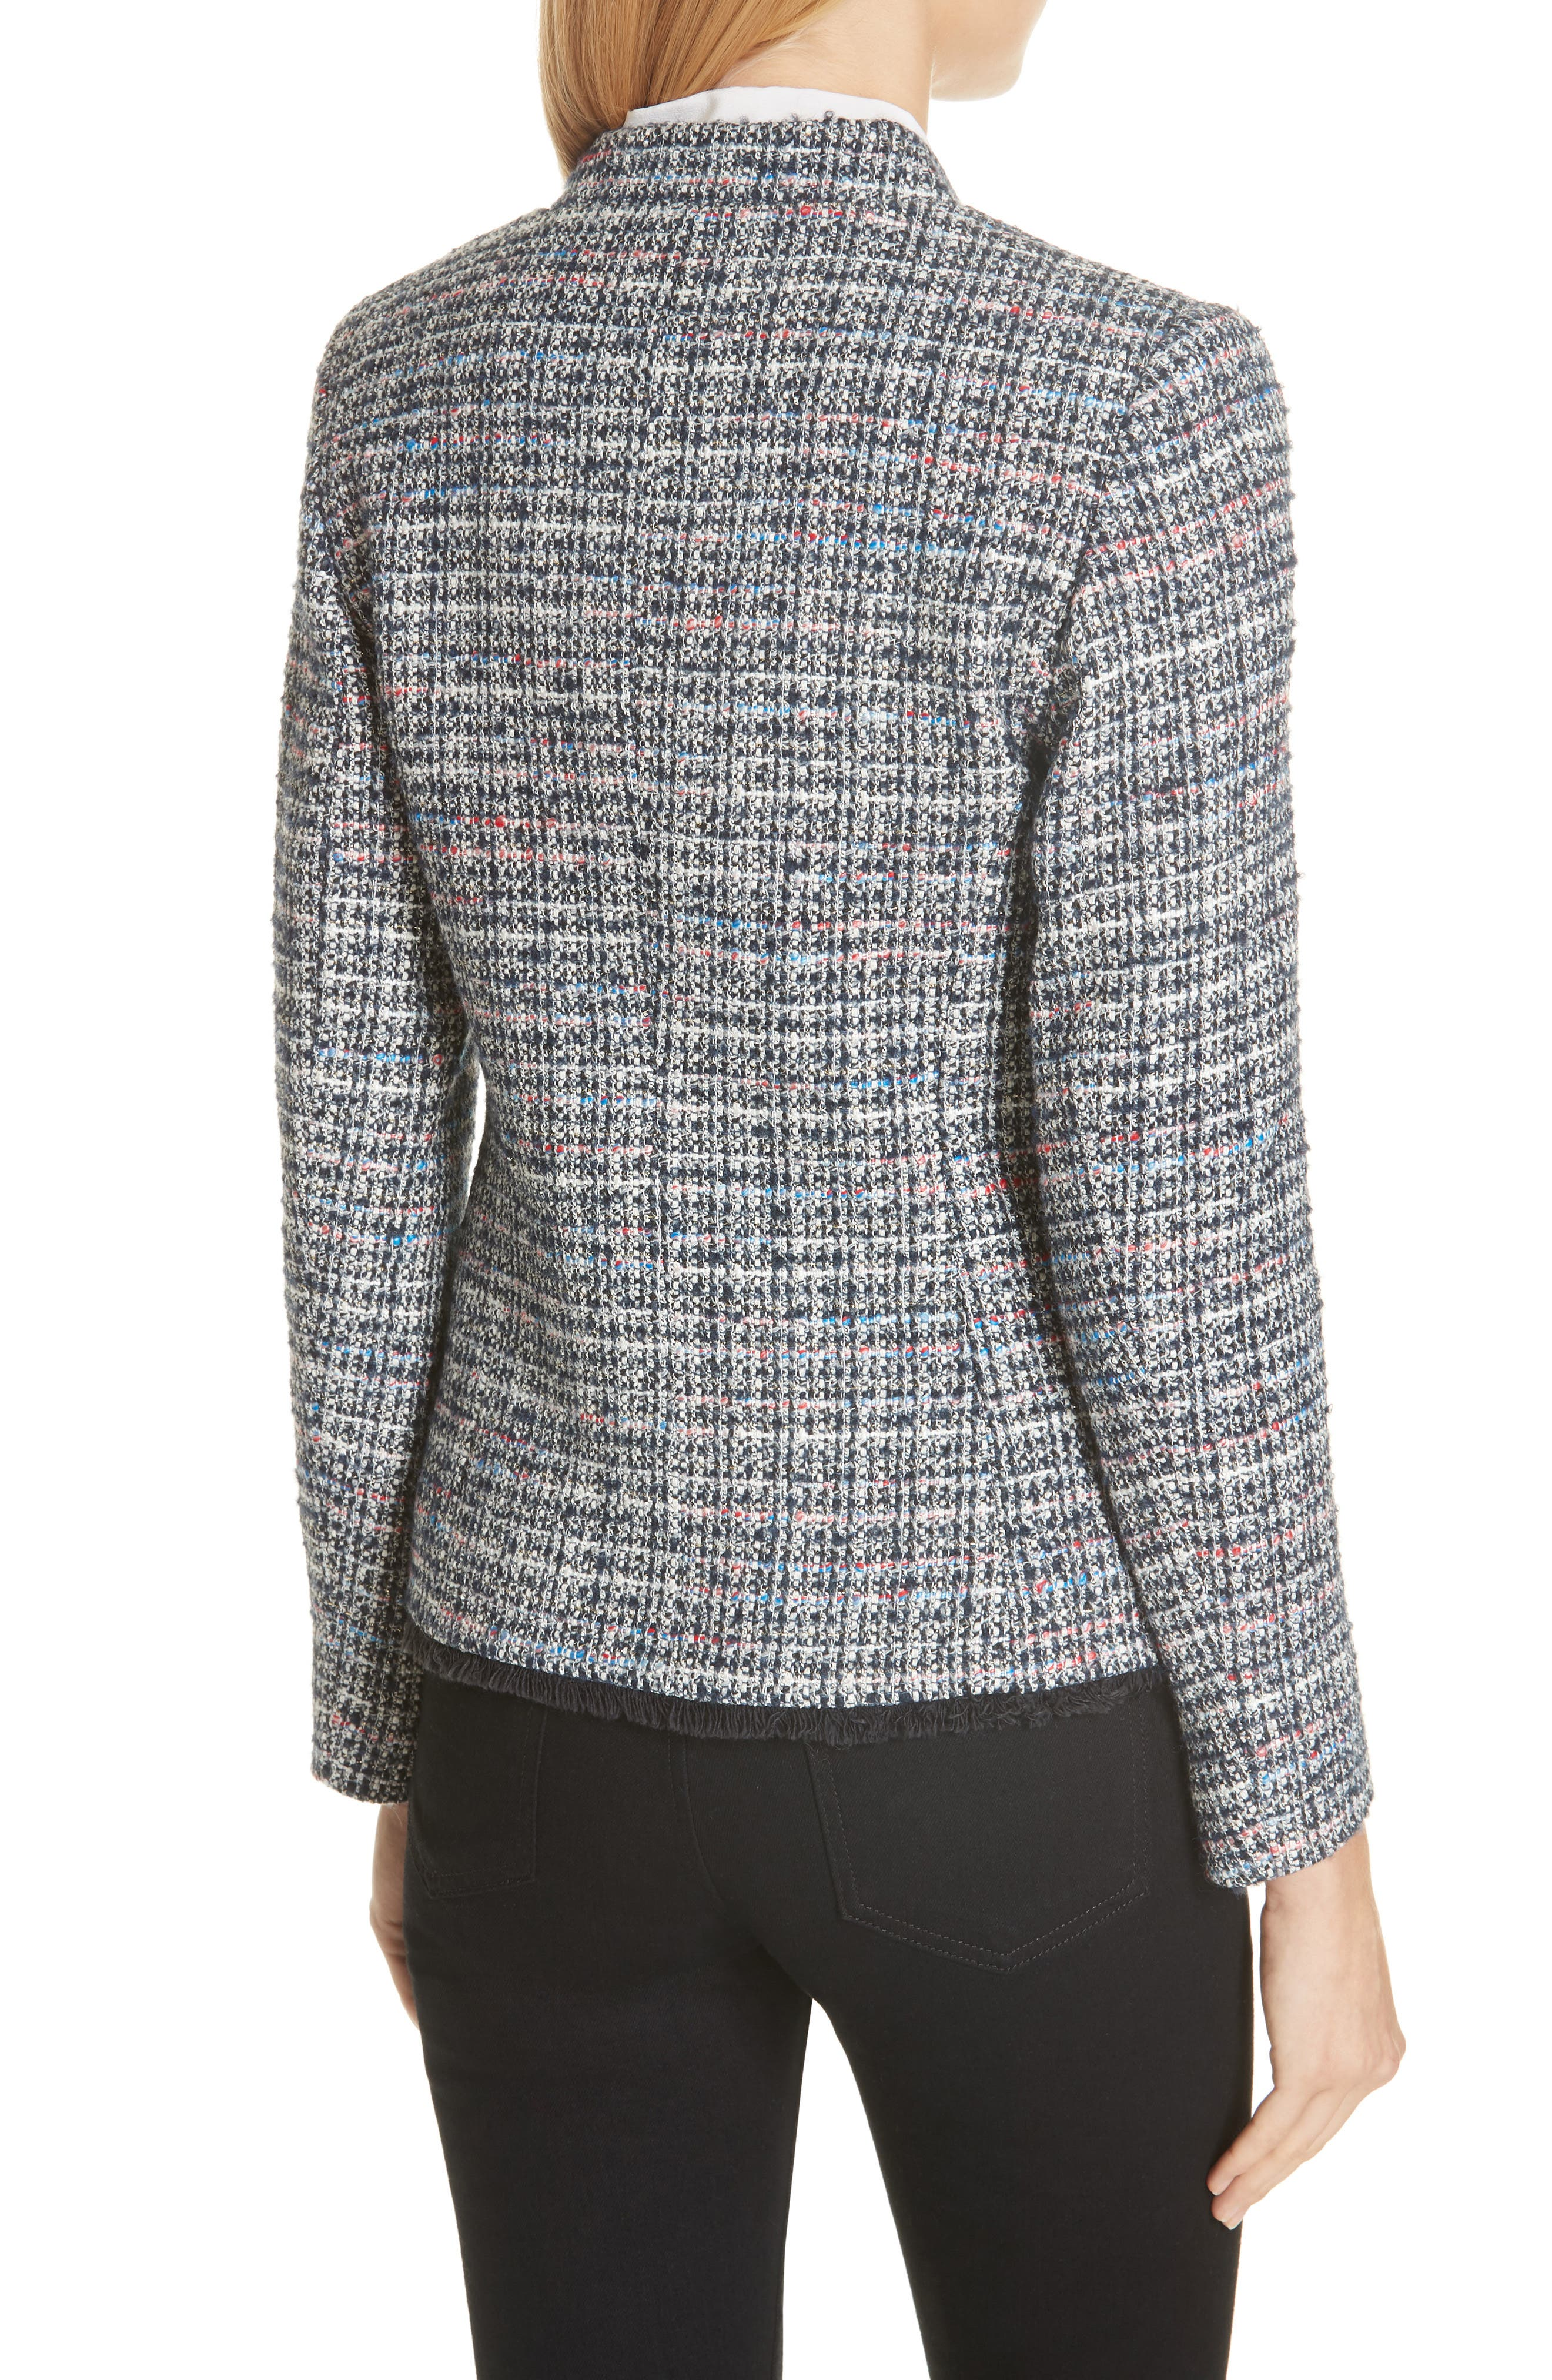 Helene Berman Wear To Where Looks For Every Occasion Women Bianca Top Leux Studio Silver L Nordstrom